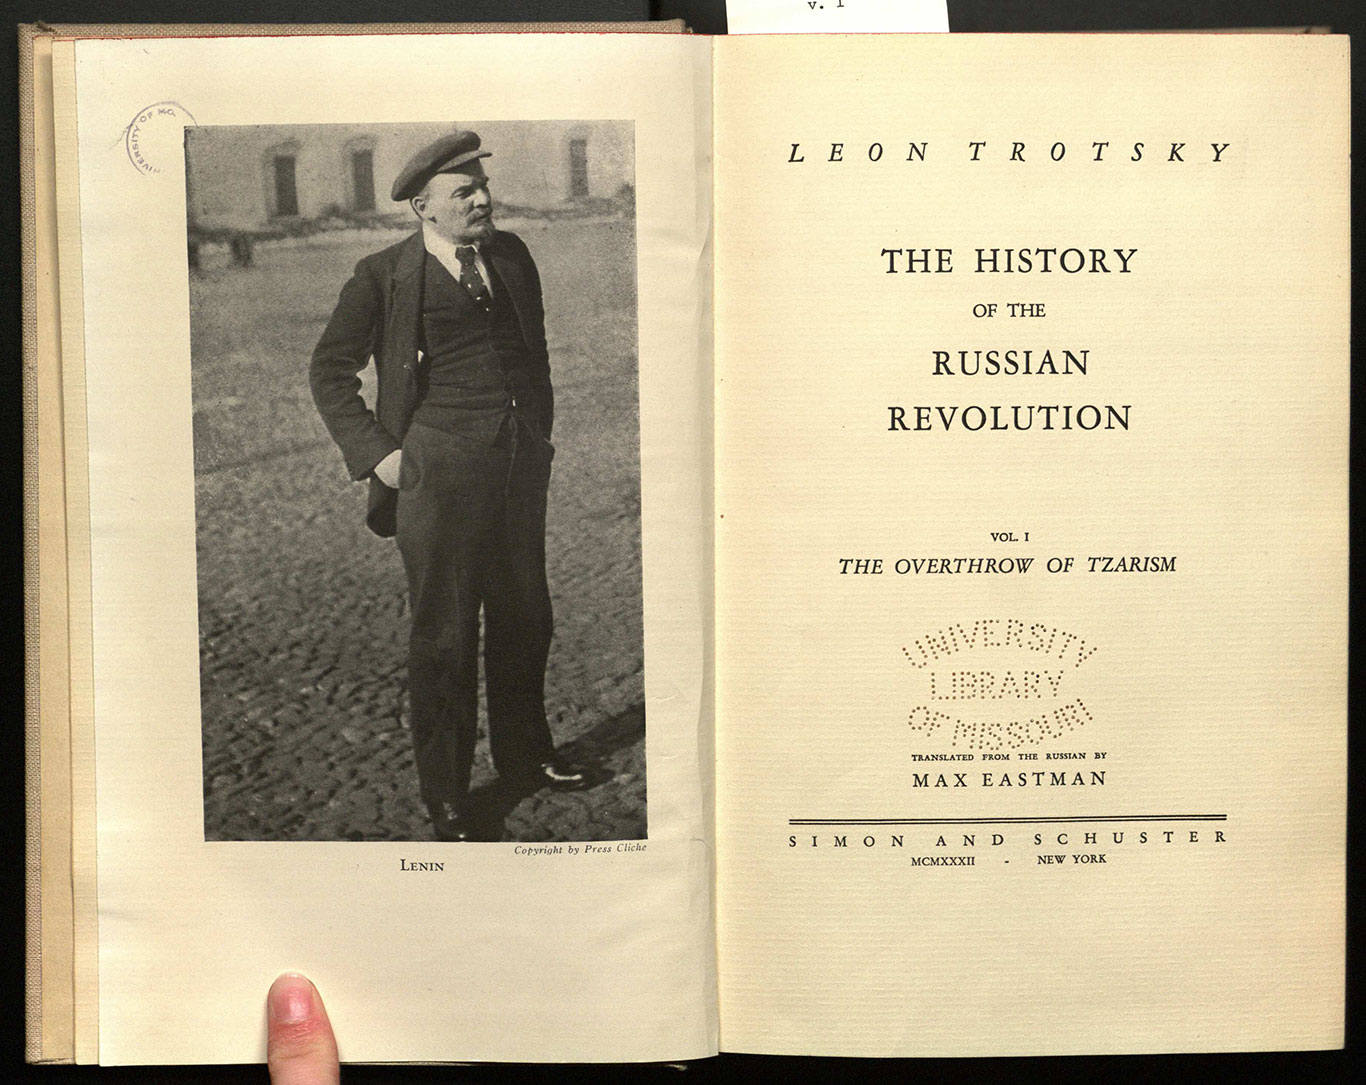 The history of the Russian revolution ... / translated from the Russian by Max Eastman.